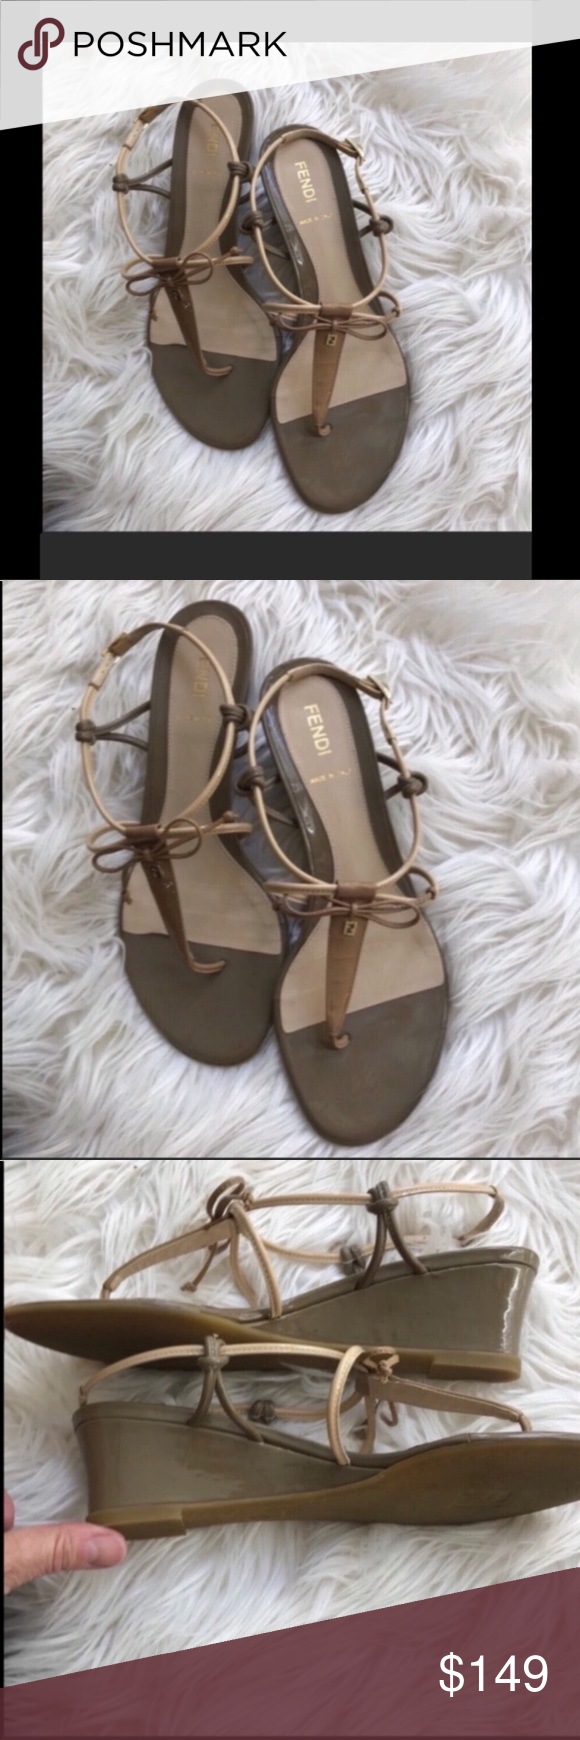 Fendi strappy neutral low wedge sandals 7 Super cute FENDI neutral sandals in very good condition.  Approx. 1.5/2in. Wedge   Bundle two or more items and automatically save 15% - use filter button to find more name brand items Fendi Shoes Sandals #lowwedgesandals Fendi strappy neutral low wedge sandals 7 Super cute FENDI neutral sandals in very good condition.  Approx. 1.5/2in. Wedge   Bundle two or more items and automatically save 15% - use filter button to find more name brand items Fendi Sho #lowwedgesandals